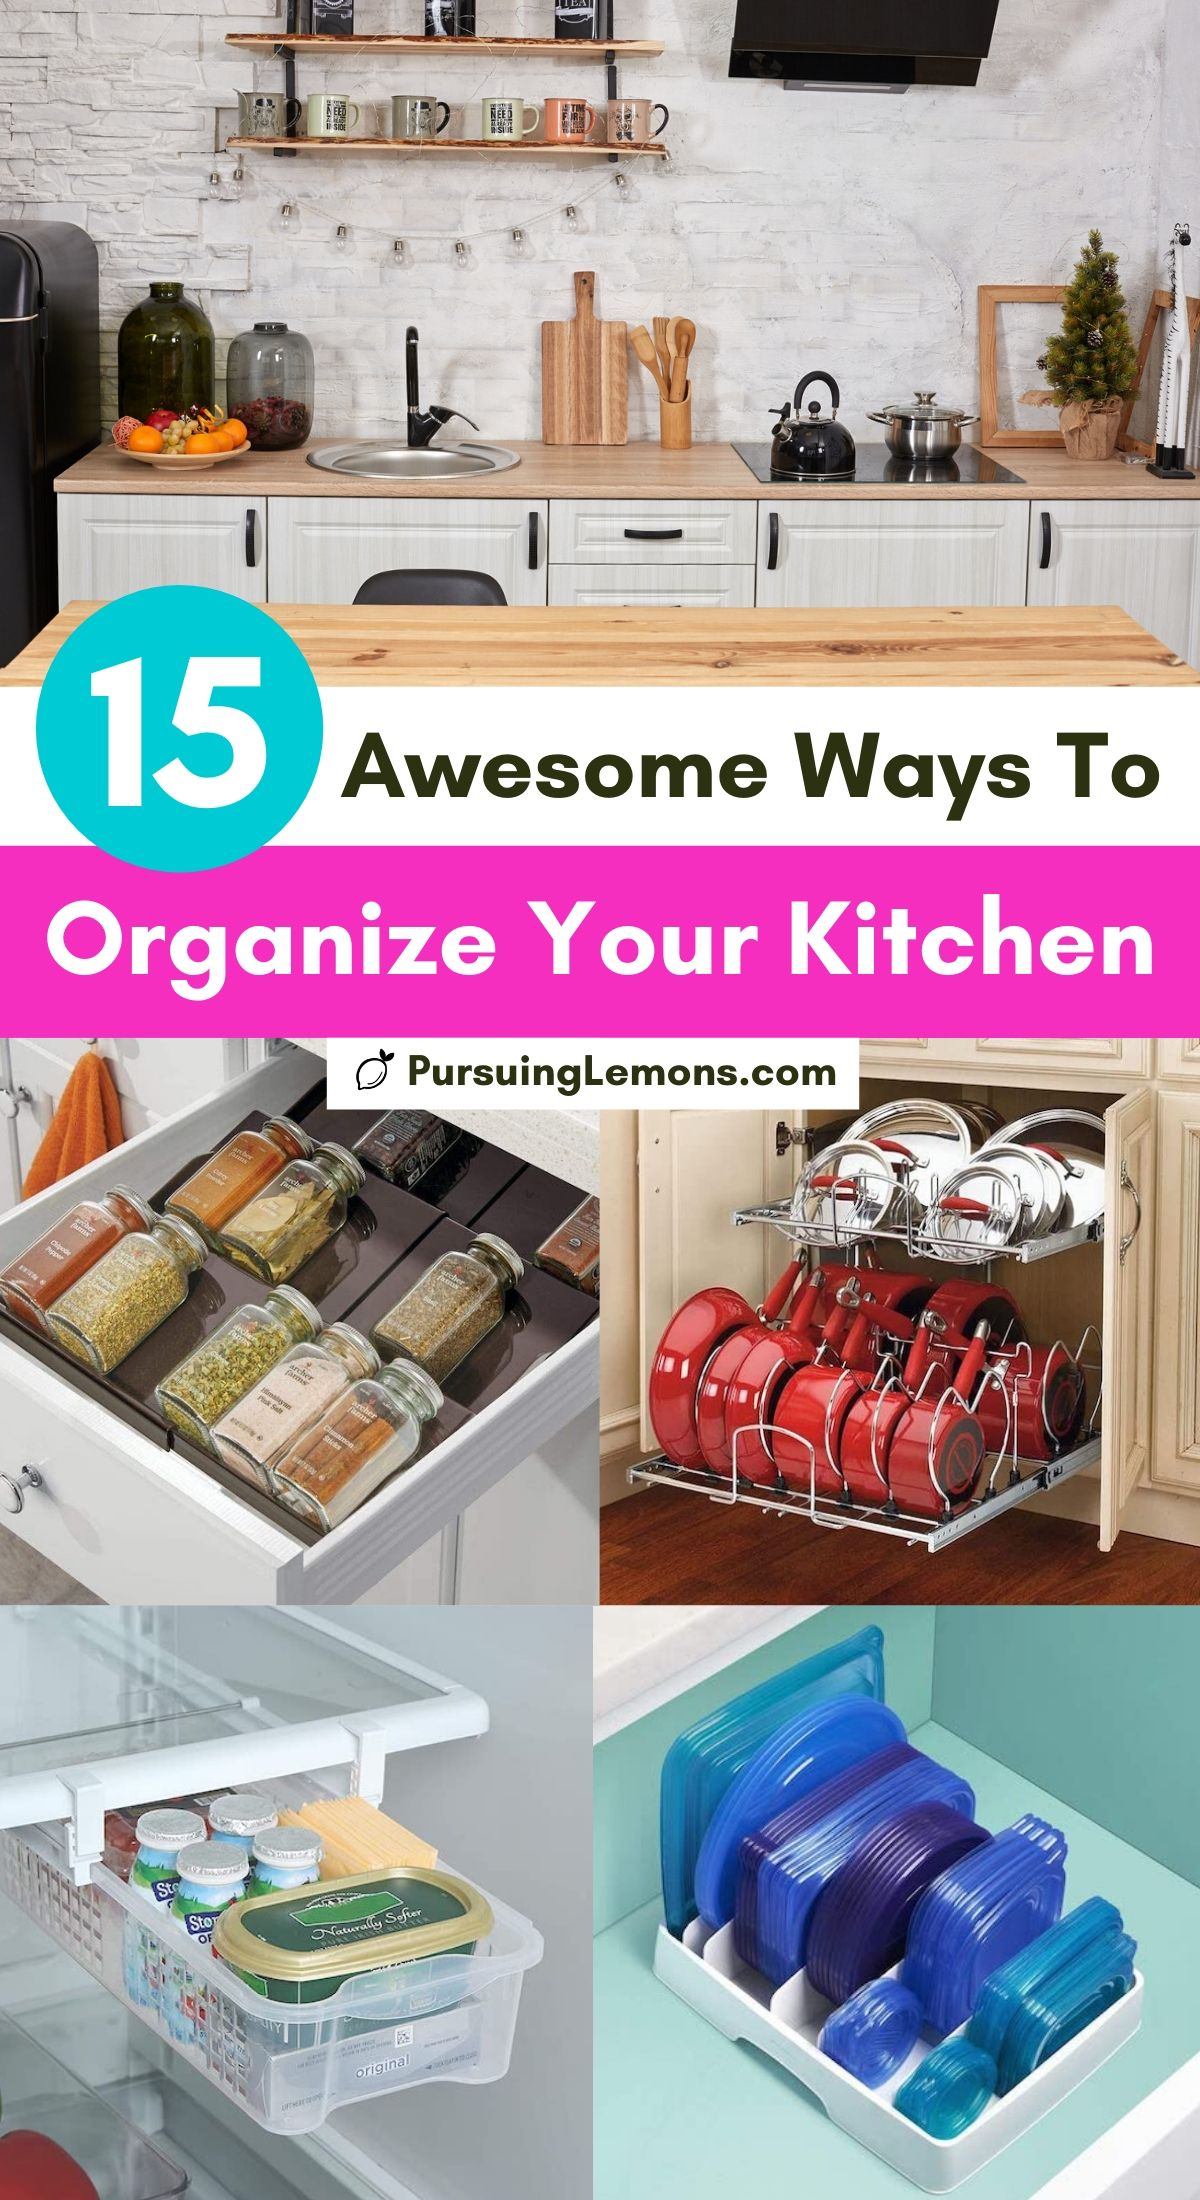 15 Awesome Ways to Organize Your Kitchen | Are you struggling to keep your kitchen organized? Do you need some kitchen organization tips? Here are 15 kitchen organization tricks for your counters, pantry, fridge, freezer, cabinets, and drawers! #kitchenorganization #organizekitchen #kitchenorganizationtips